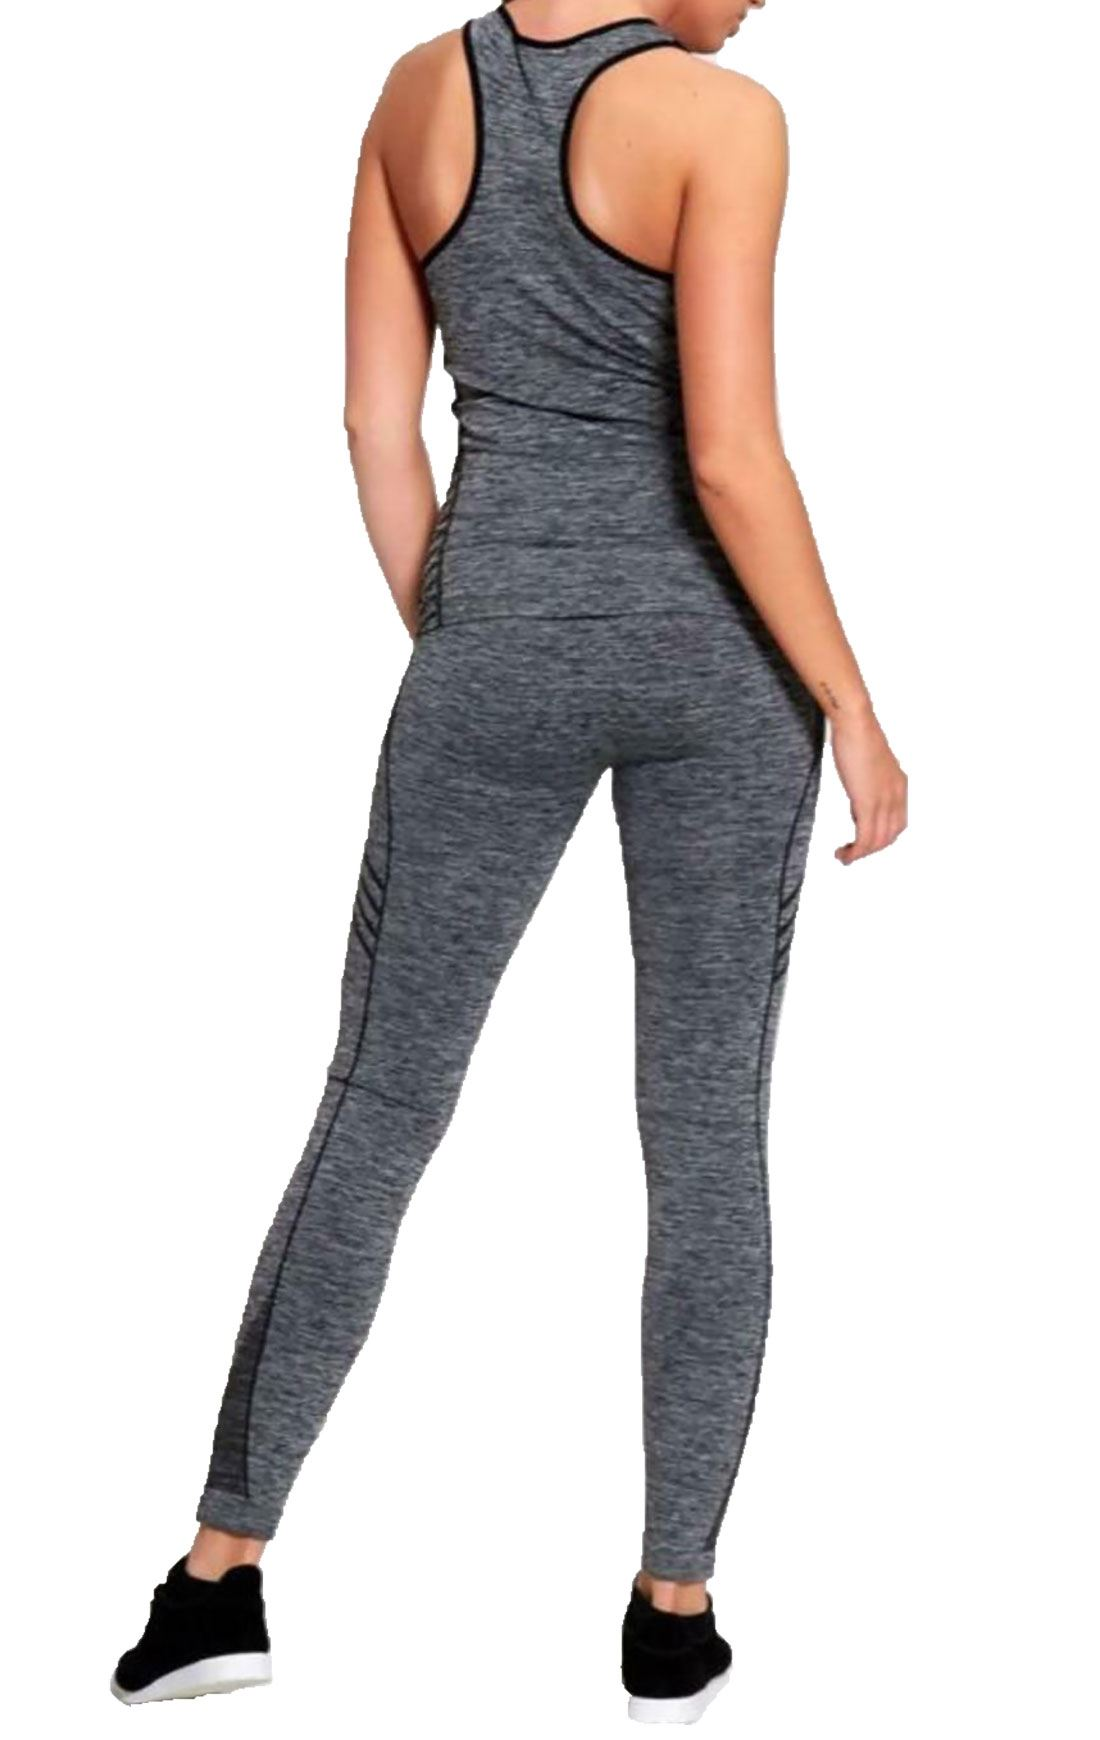 Ladies Active Gym Wear Tracksuit Womens Sports Wear Vest And Leggings Co Ord Set